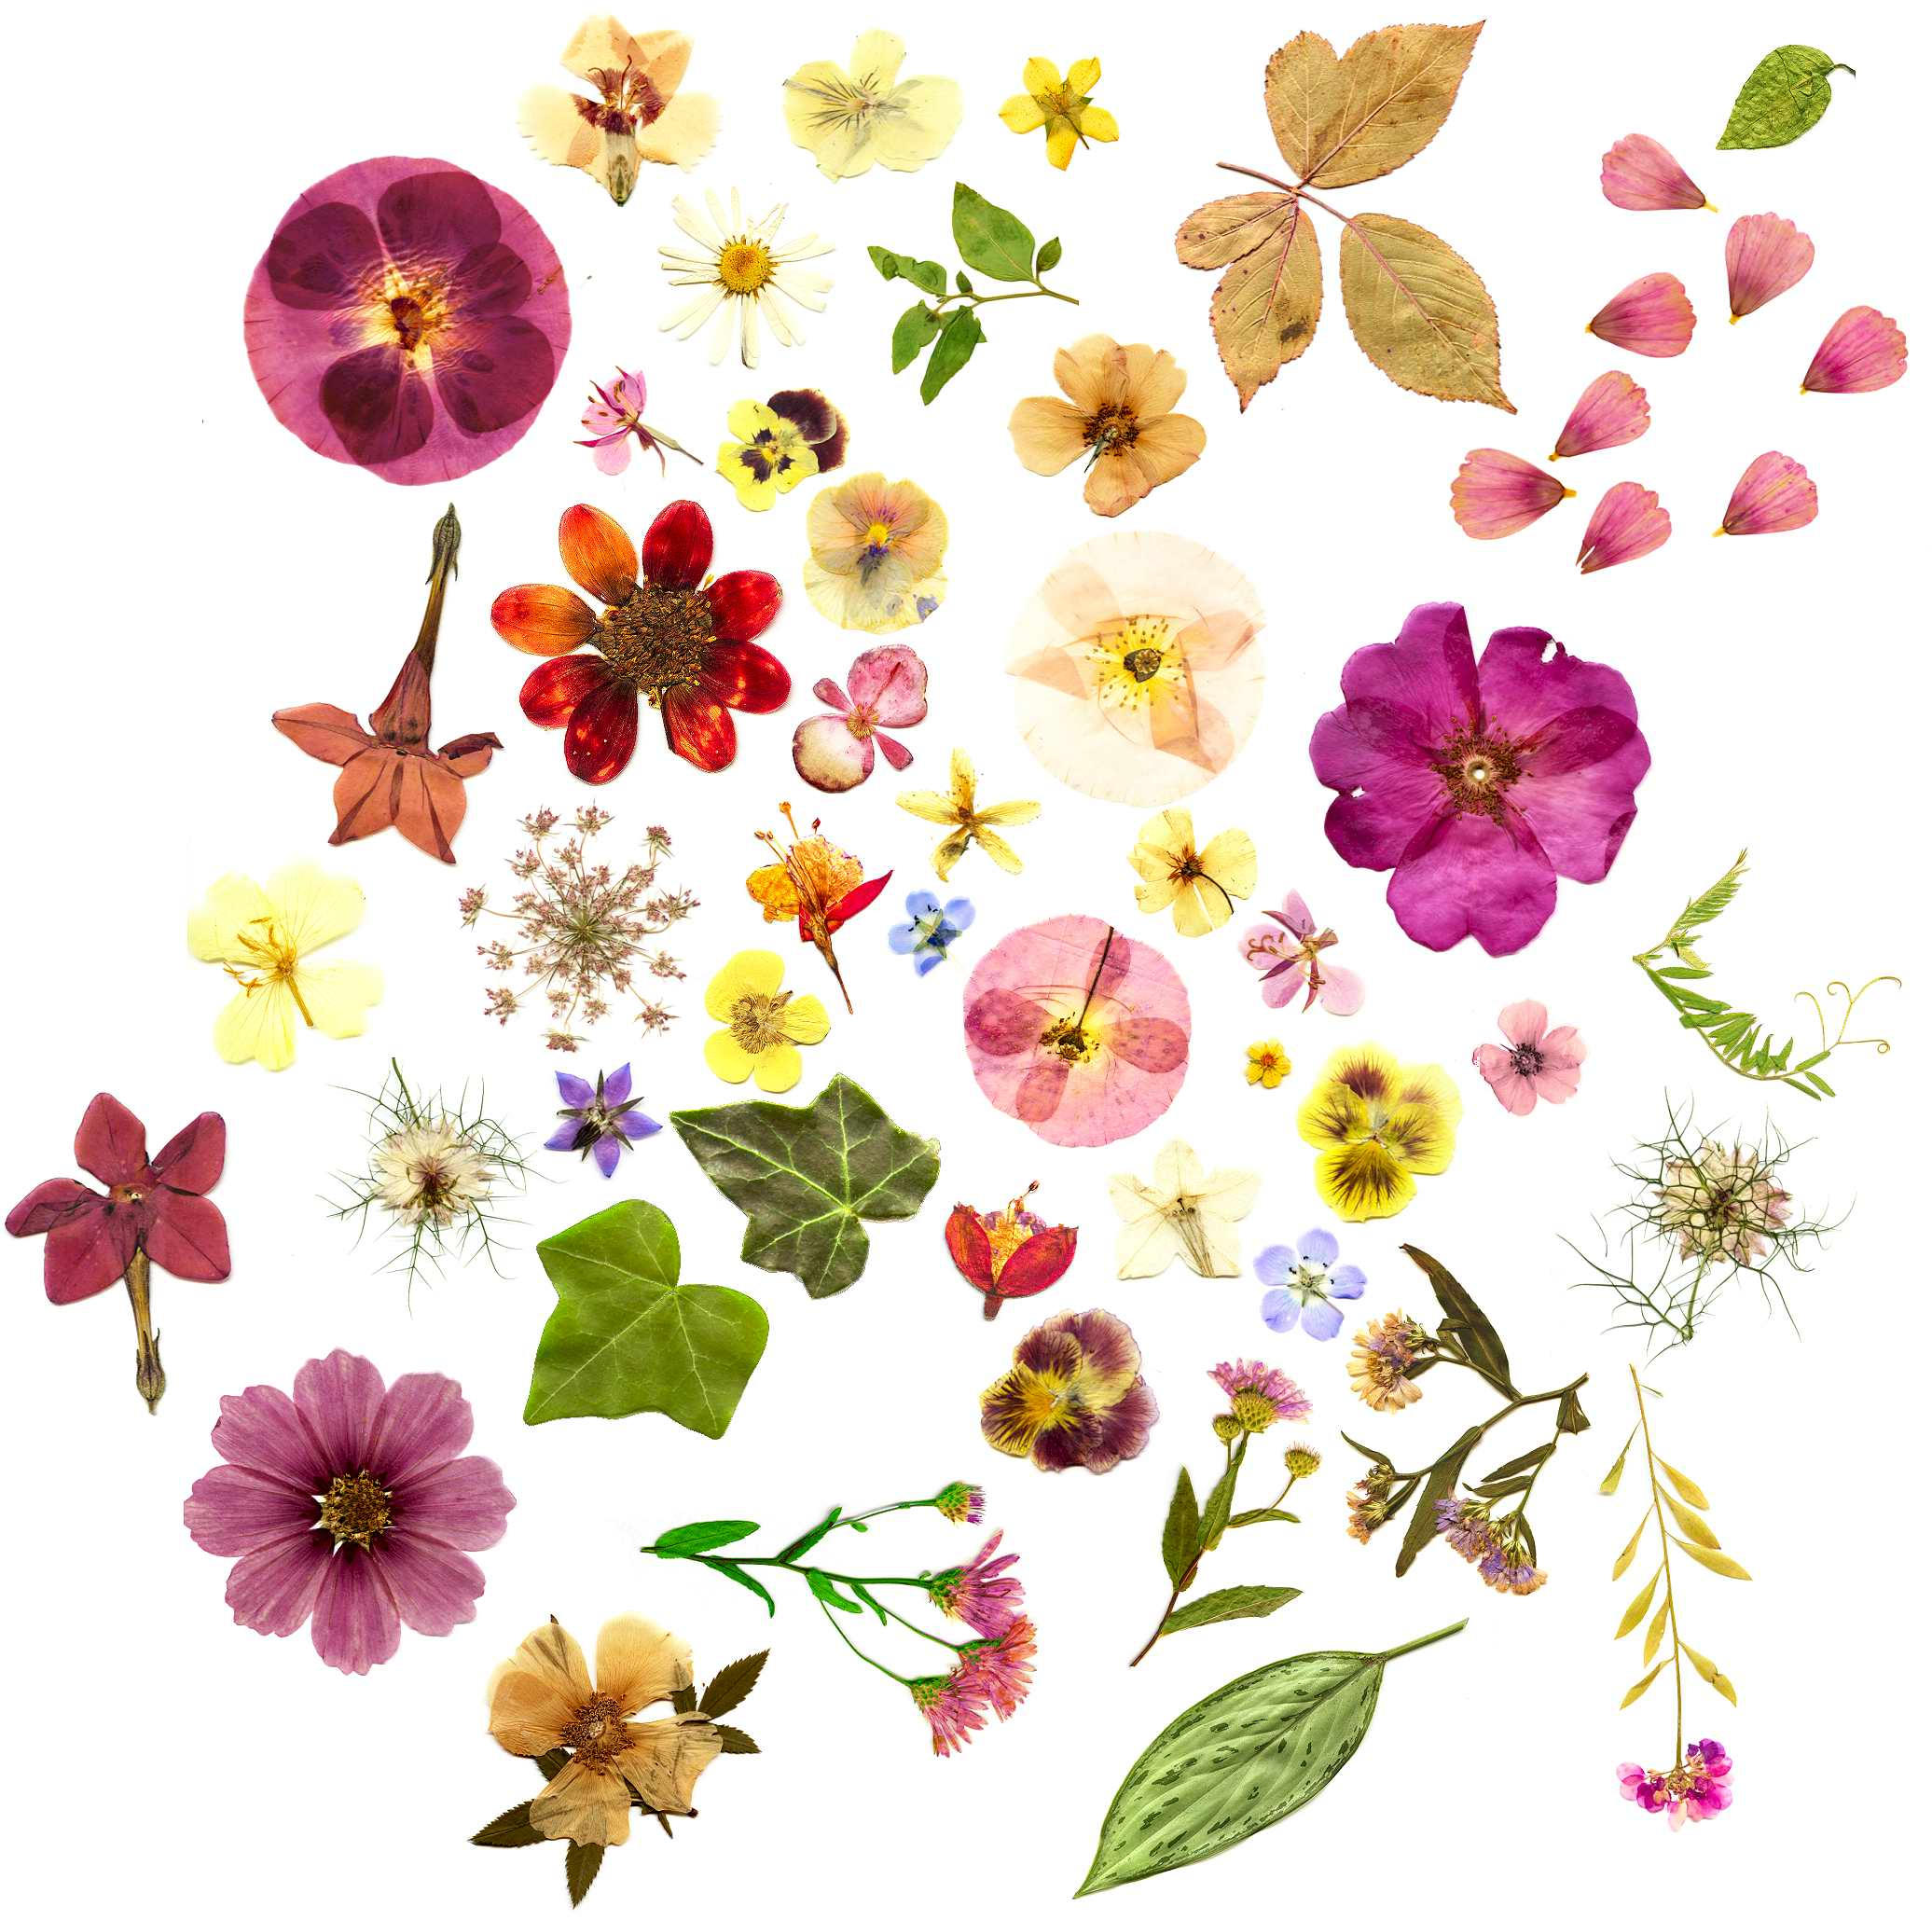 Floral stockpic by foley-resources